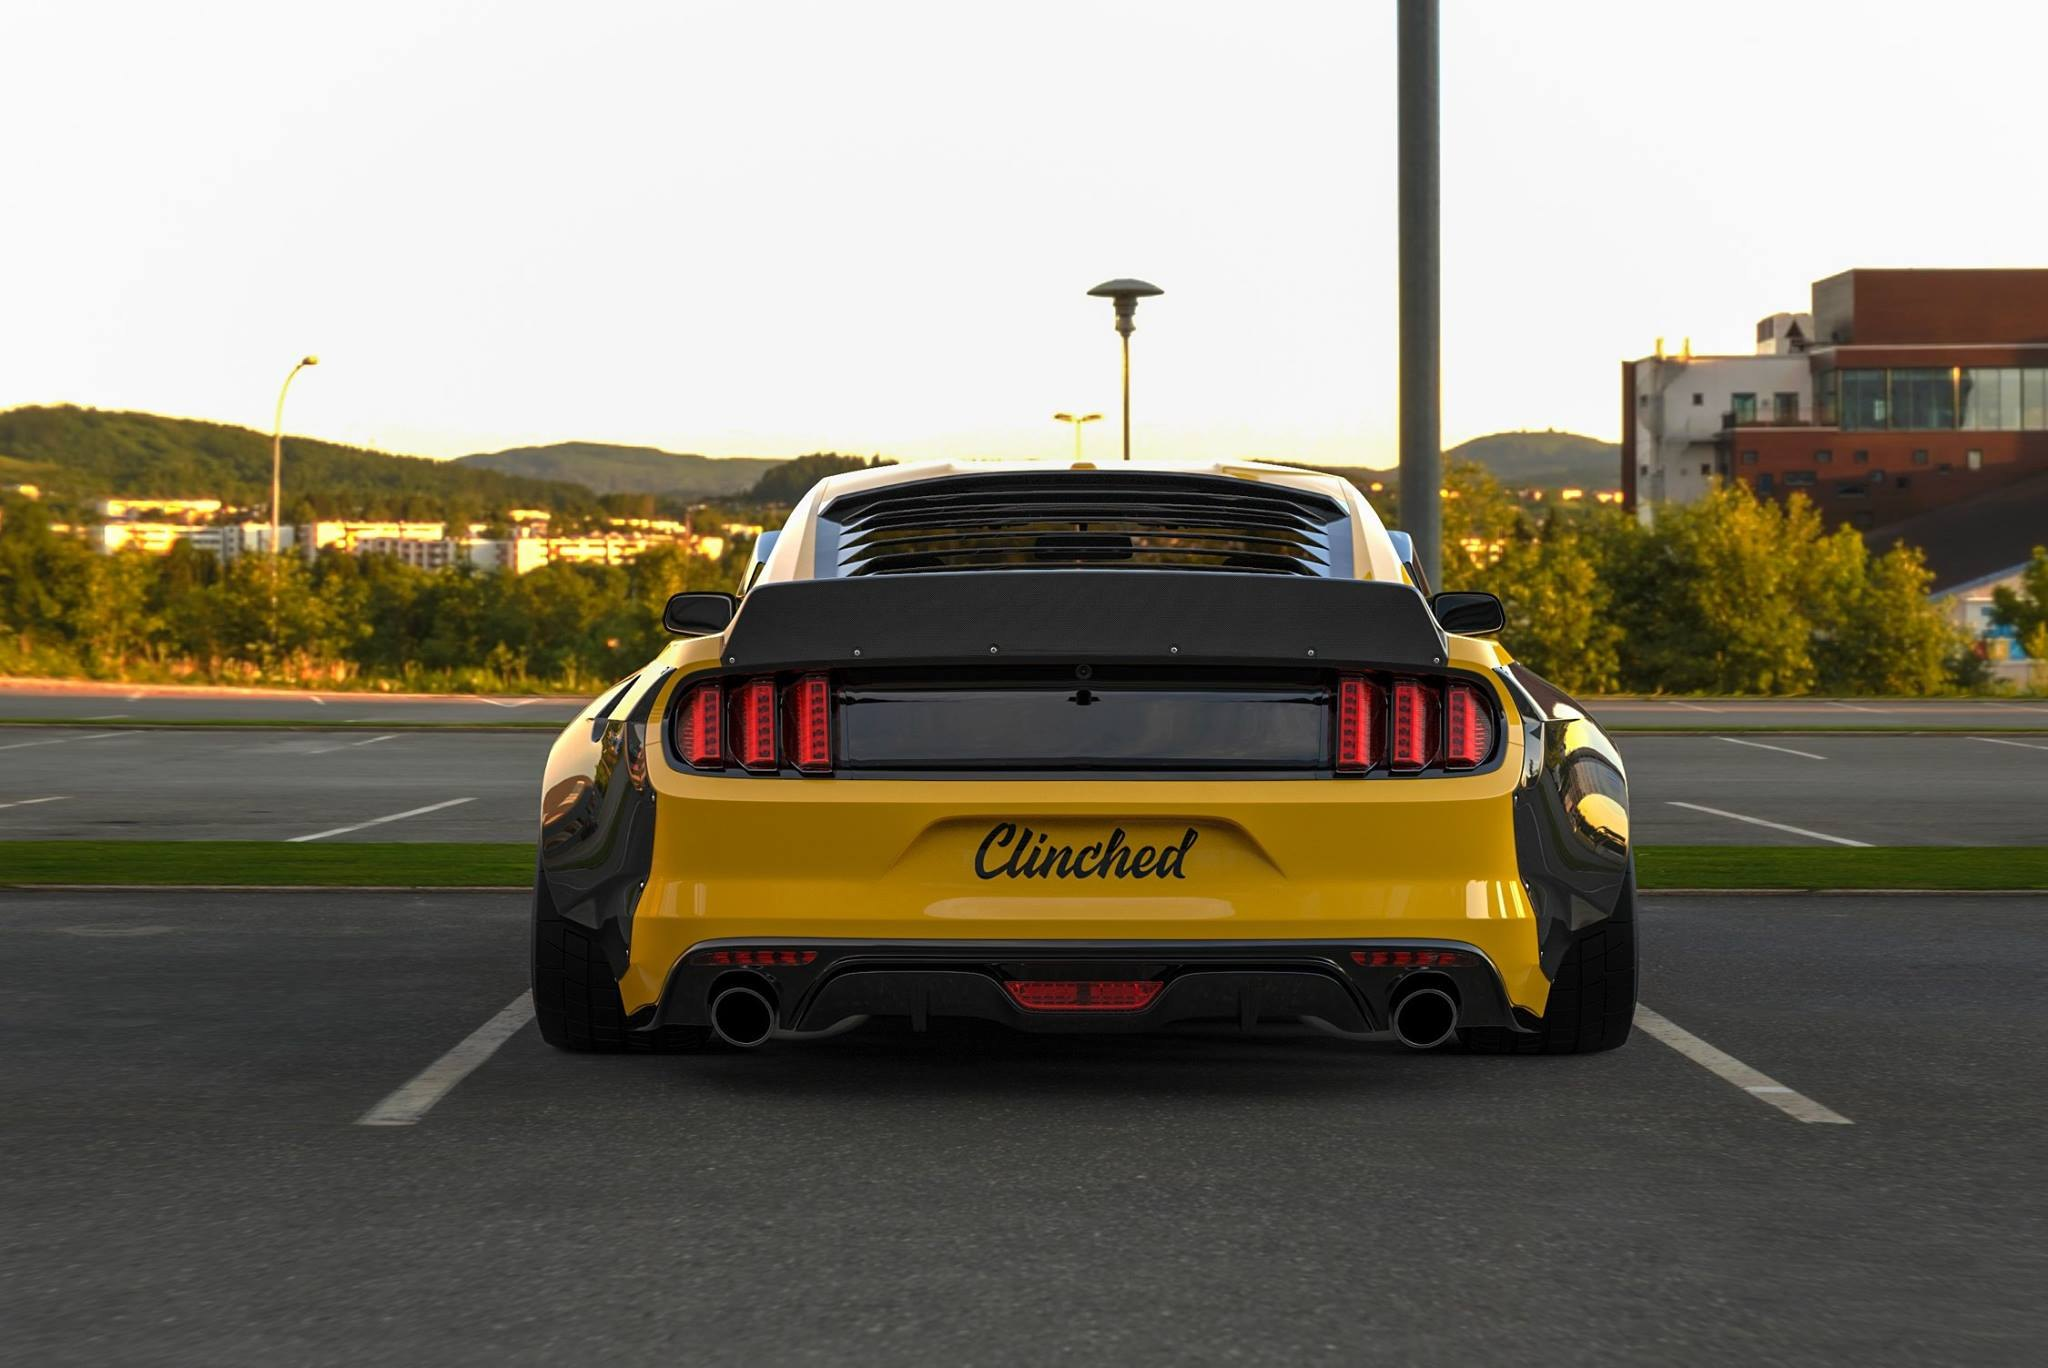 Yellow Ford Mustang with Aftermarket Rear Diffuser - Photo by Clinched